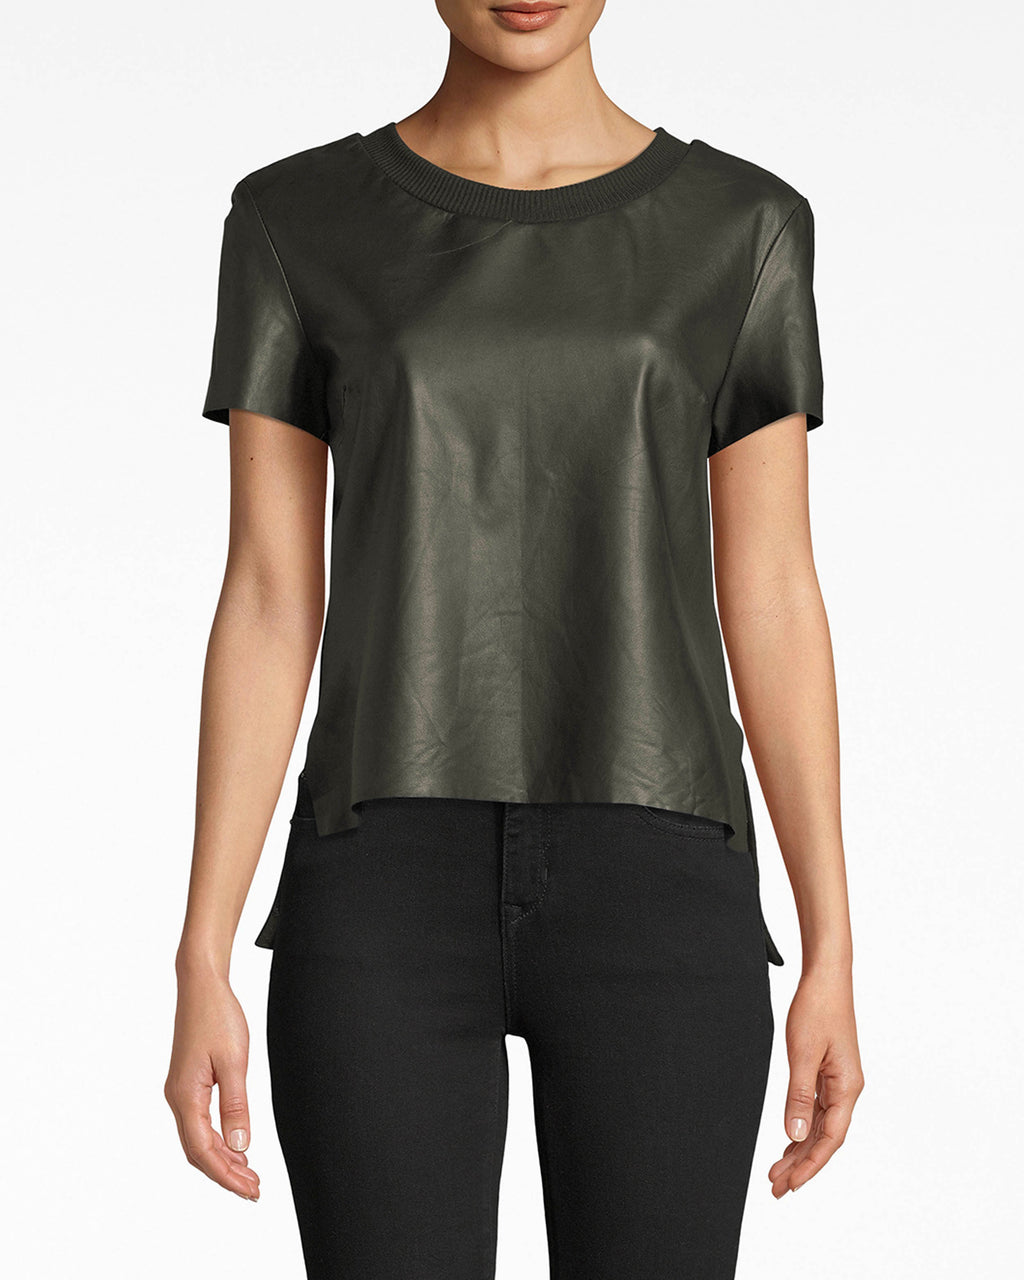 BG10336 - LEATHER T-SHIRT - tops - shirts - Leather goes a long way. This short sleeve top is crafted with our luxurious leather and cooling cotton. The double-fabric creates a double mood: rebellious and understated.